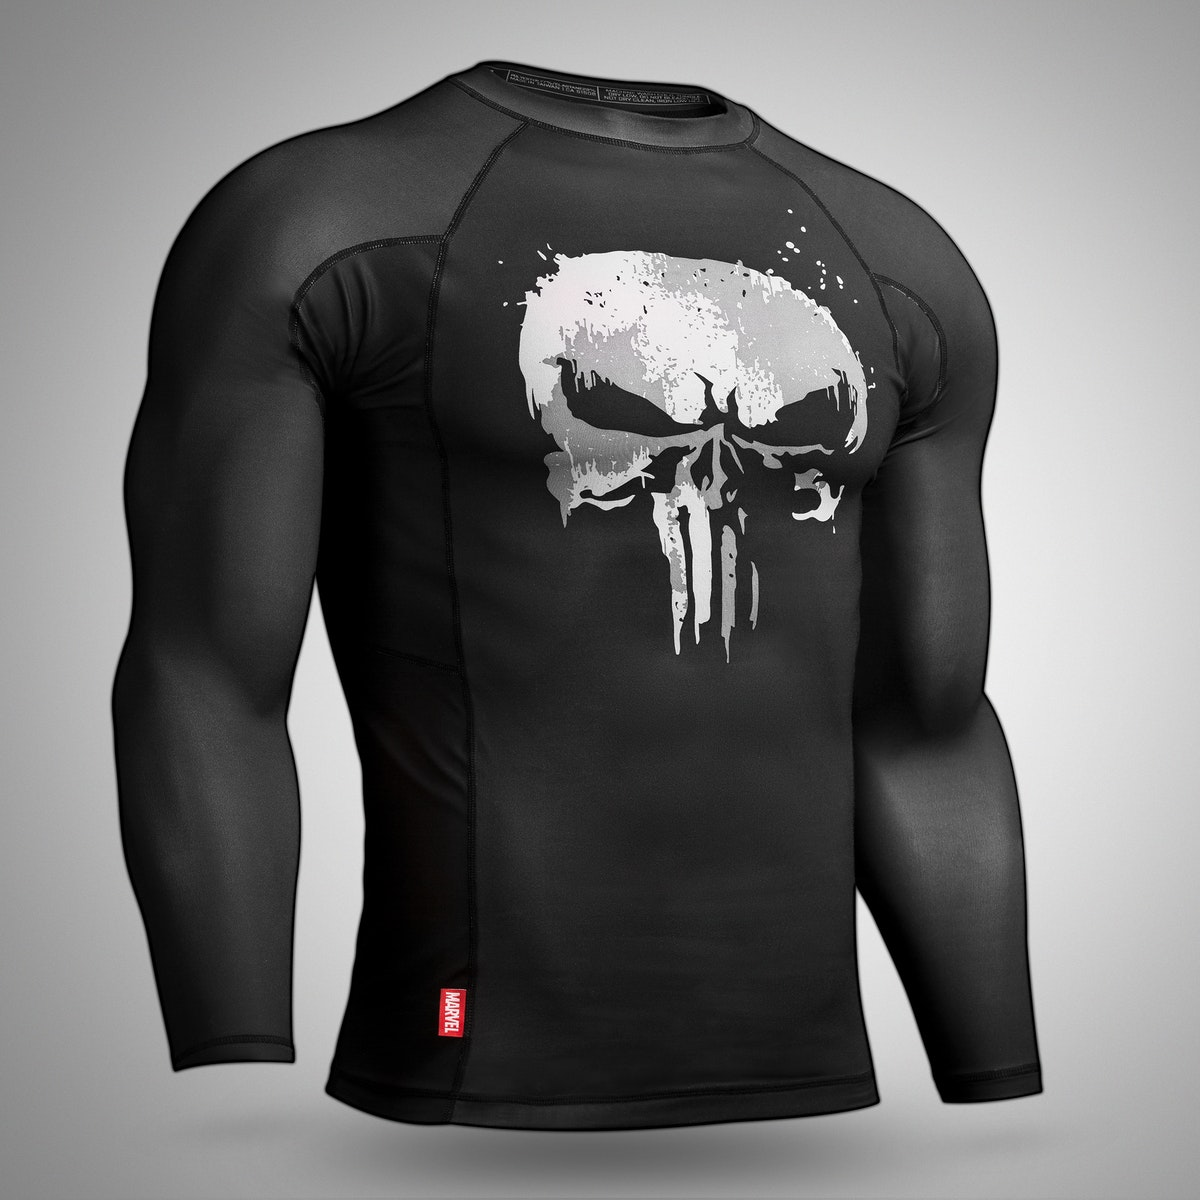 7d375c9d45a2 Marvel Hero Elite: Punisher LS Rash Guard by Hayabusa | Limited Ed ...